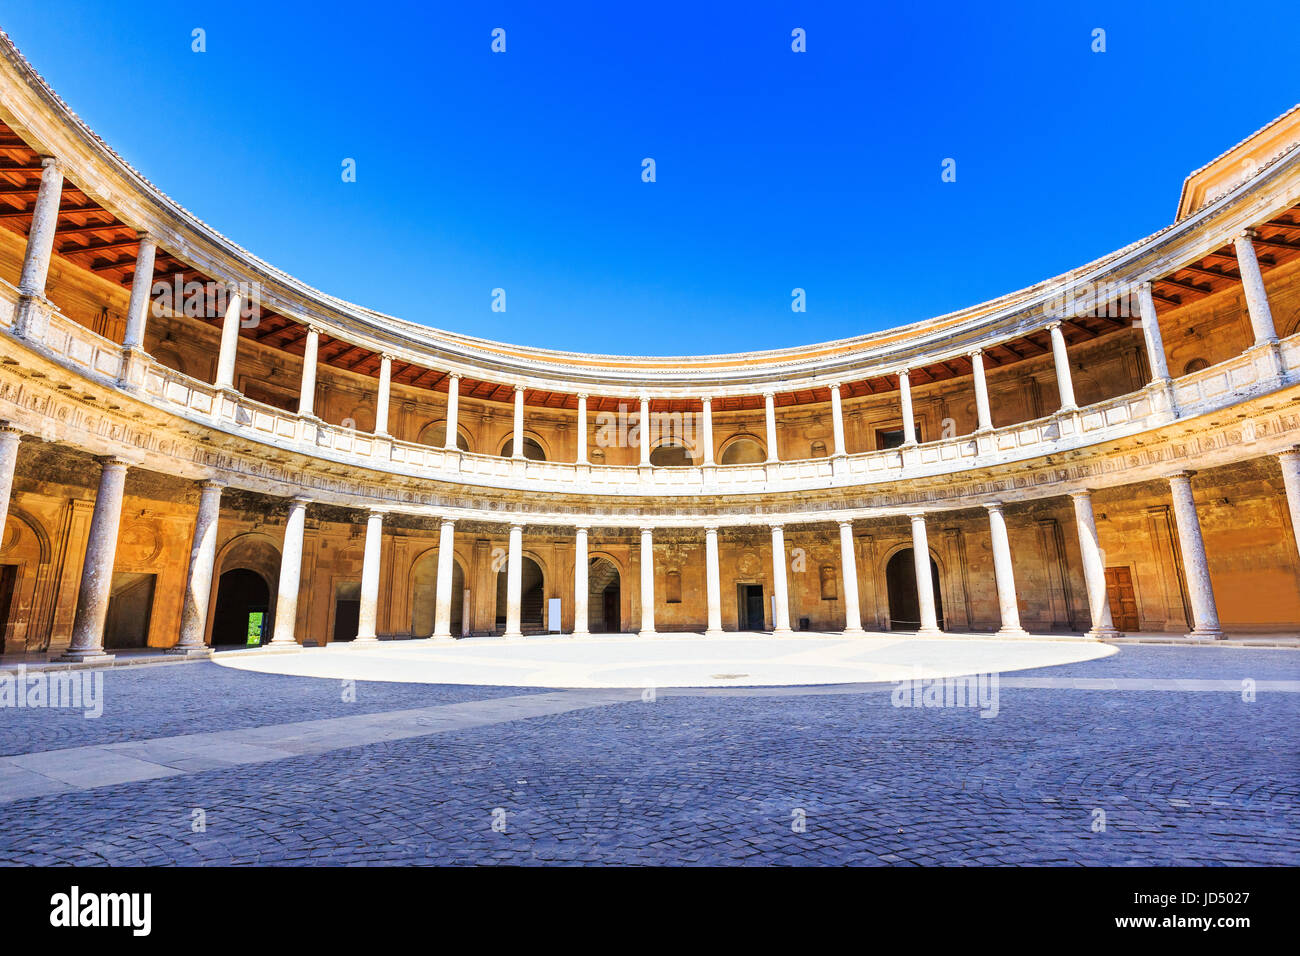 Alhambra of Granada, Spain. Courtyard of the Palace of Charles V Stock Photo